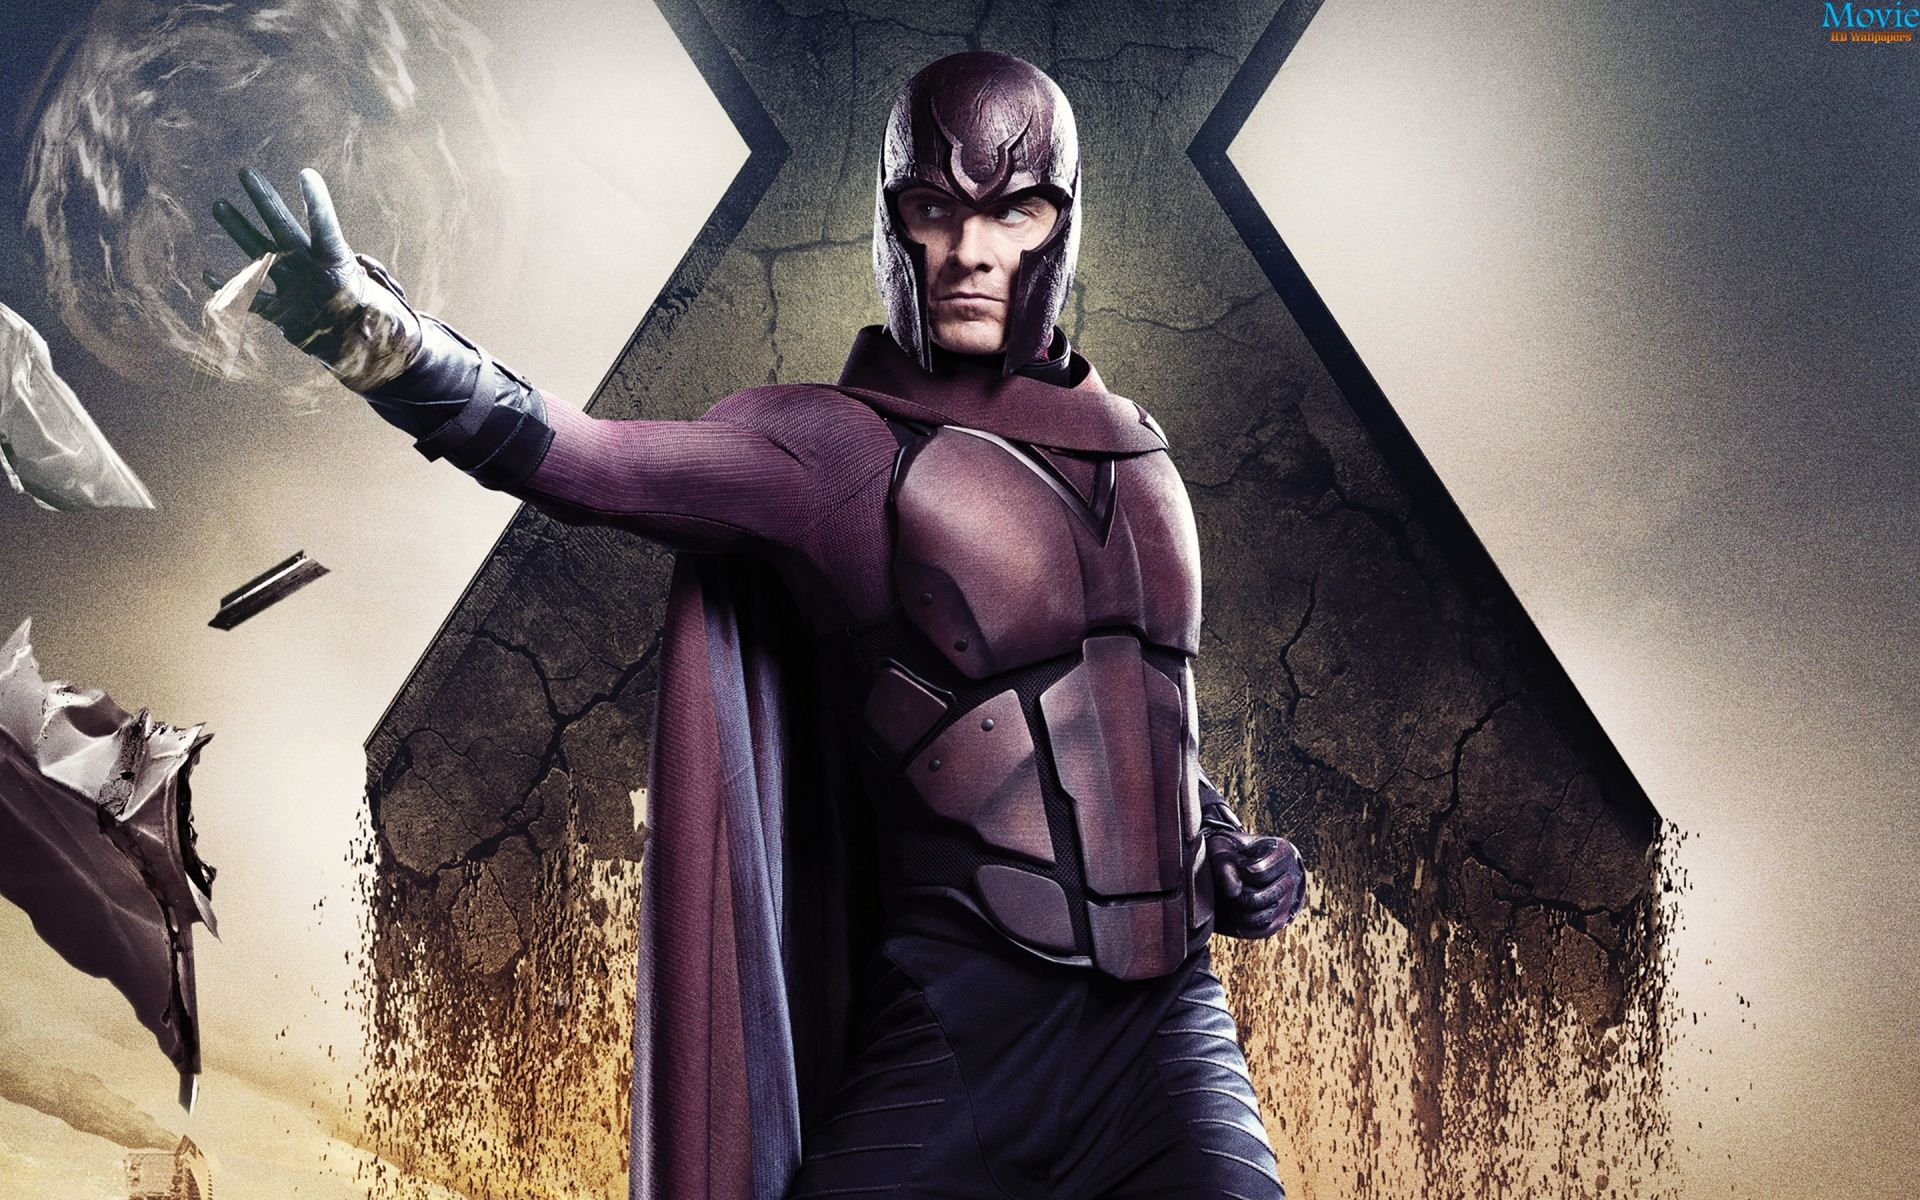 X Men Days Of Future Past New Posters Movie Hd Wallpapers